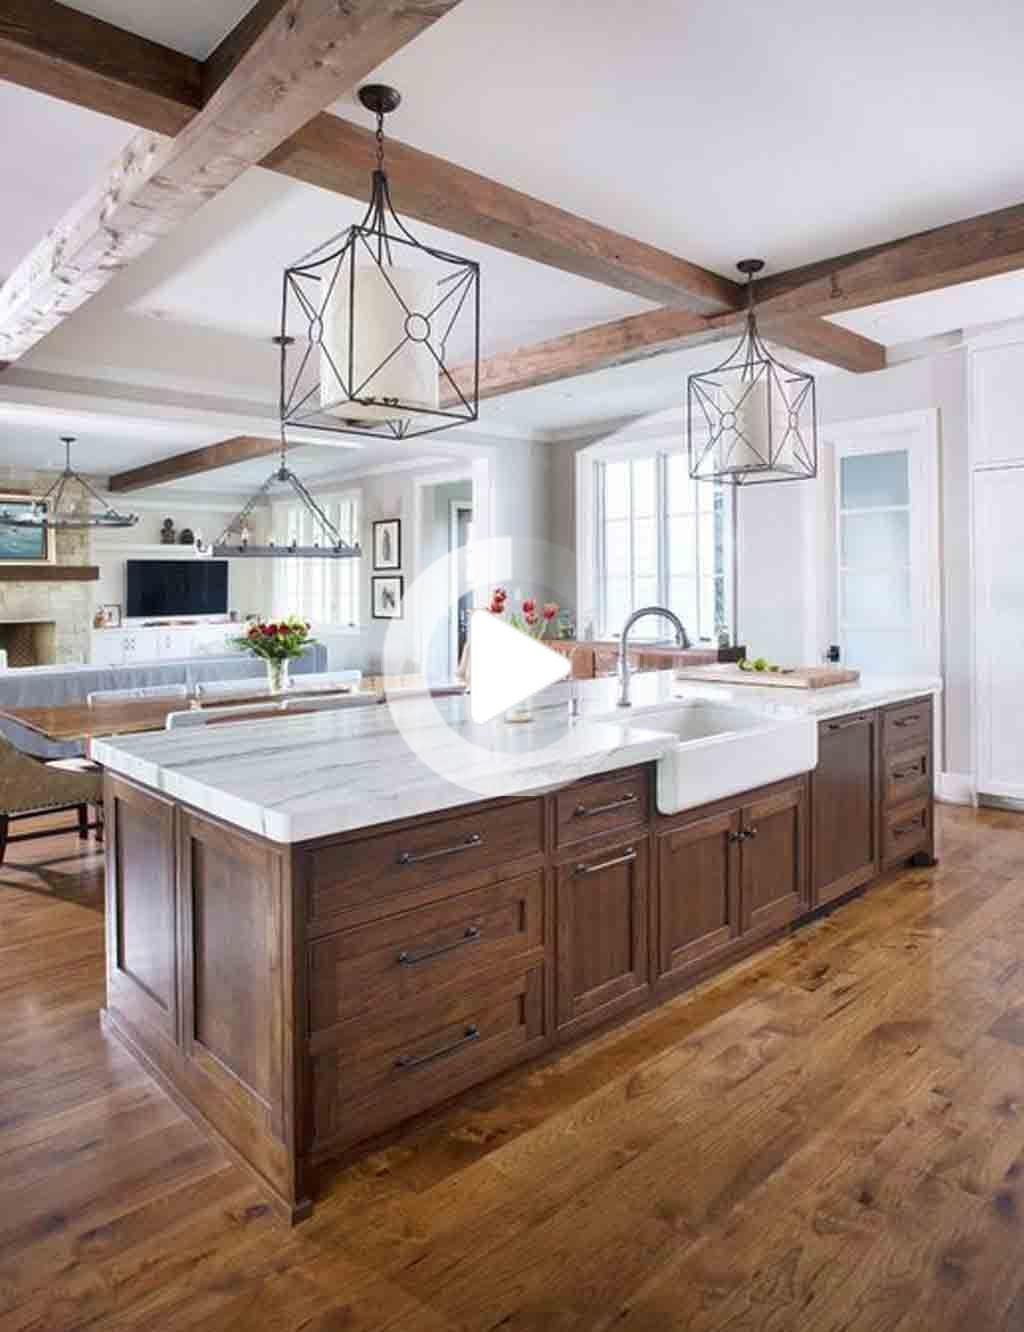 The Best Wall Colors To Update Stained Cabinets In 2020 Unfinished Kitchen Cabinets Rustic Kitchen Design Interior Design Kitchen